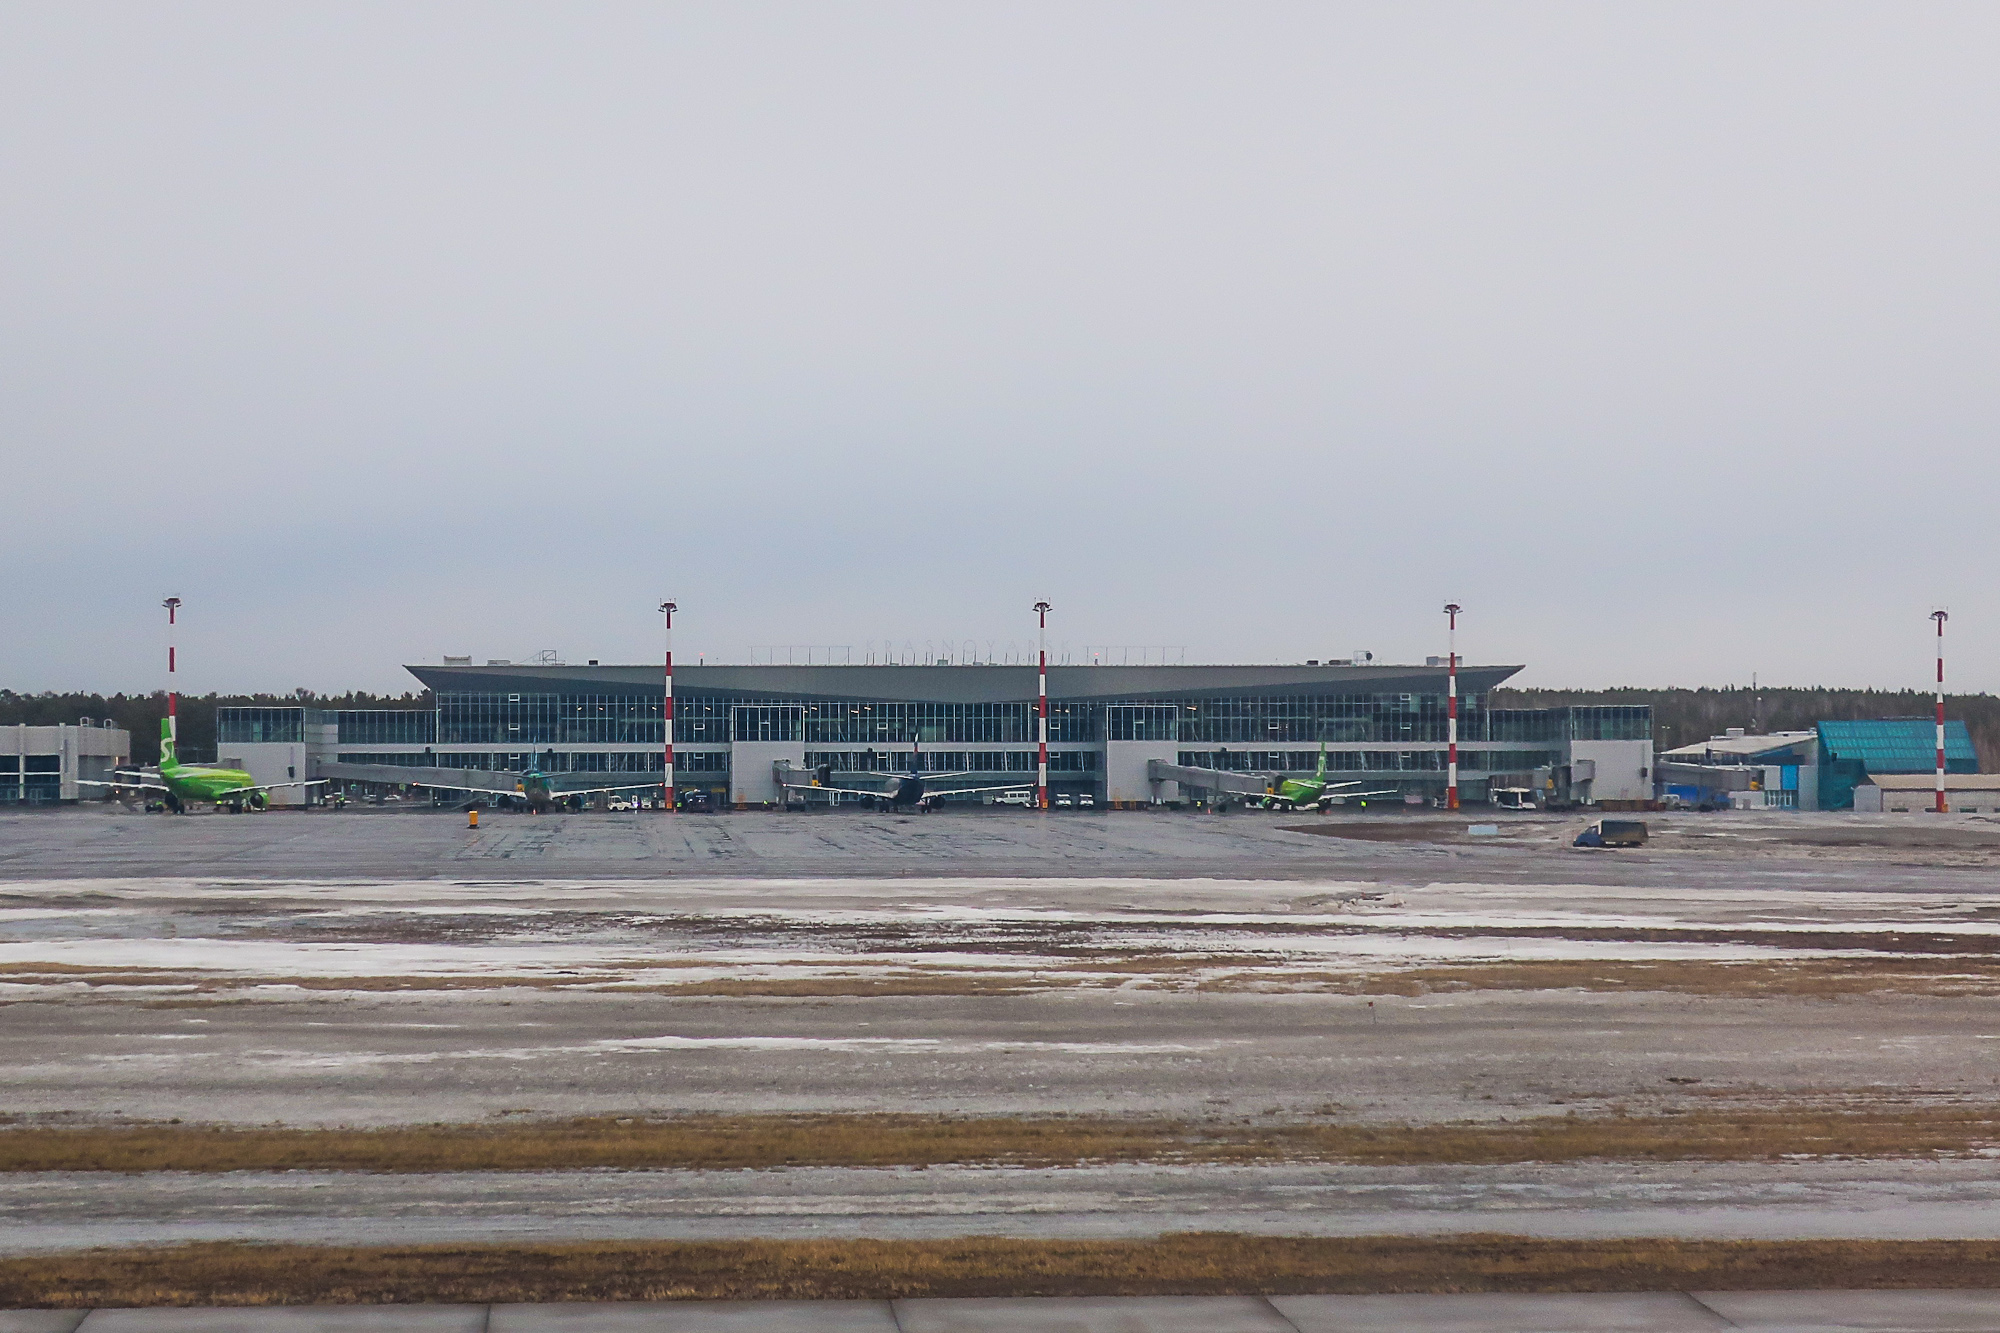 Passenger terminal 1 of the airport of Krasnoyarsk